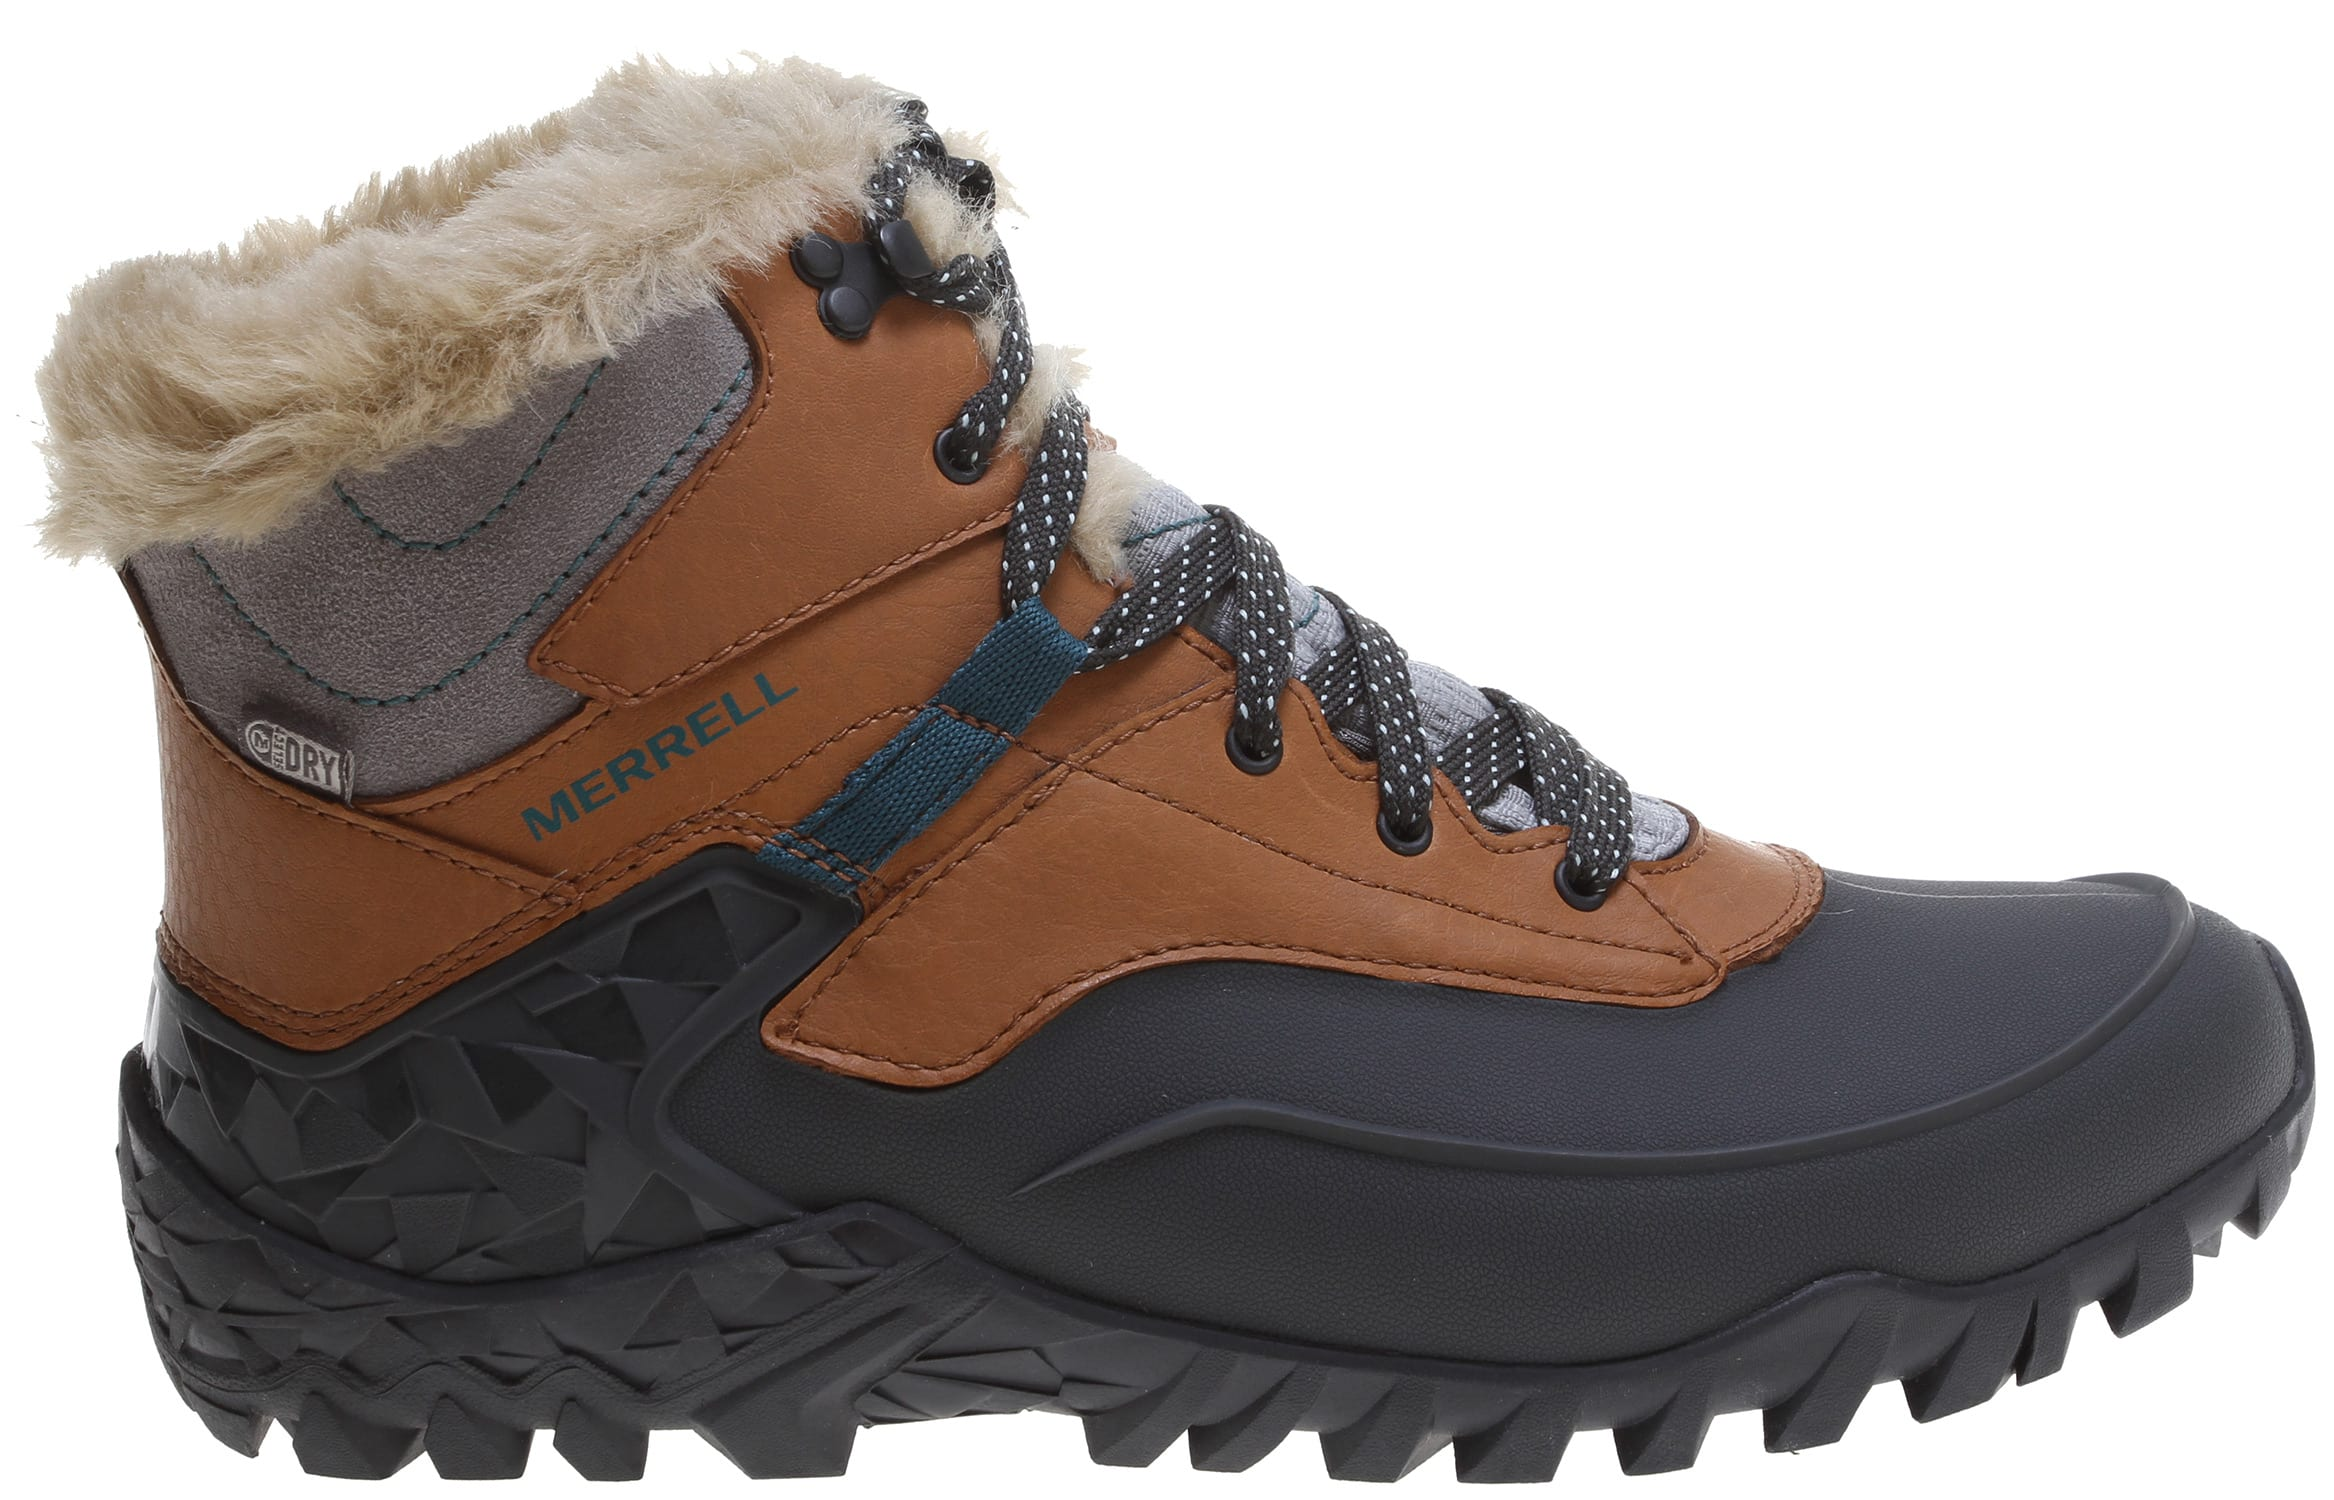 Merrell Boots have been crafted for over 30 years, with the goal of getting you into the great outdoors, without sacrificing form or comfort. Find the Ultimate Boot from Merrell As a person who prefers boots over any other shoe, you always wear your stompers to shreds.